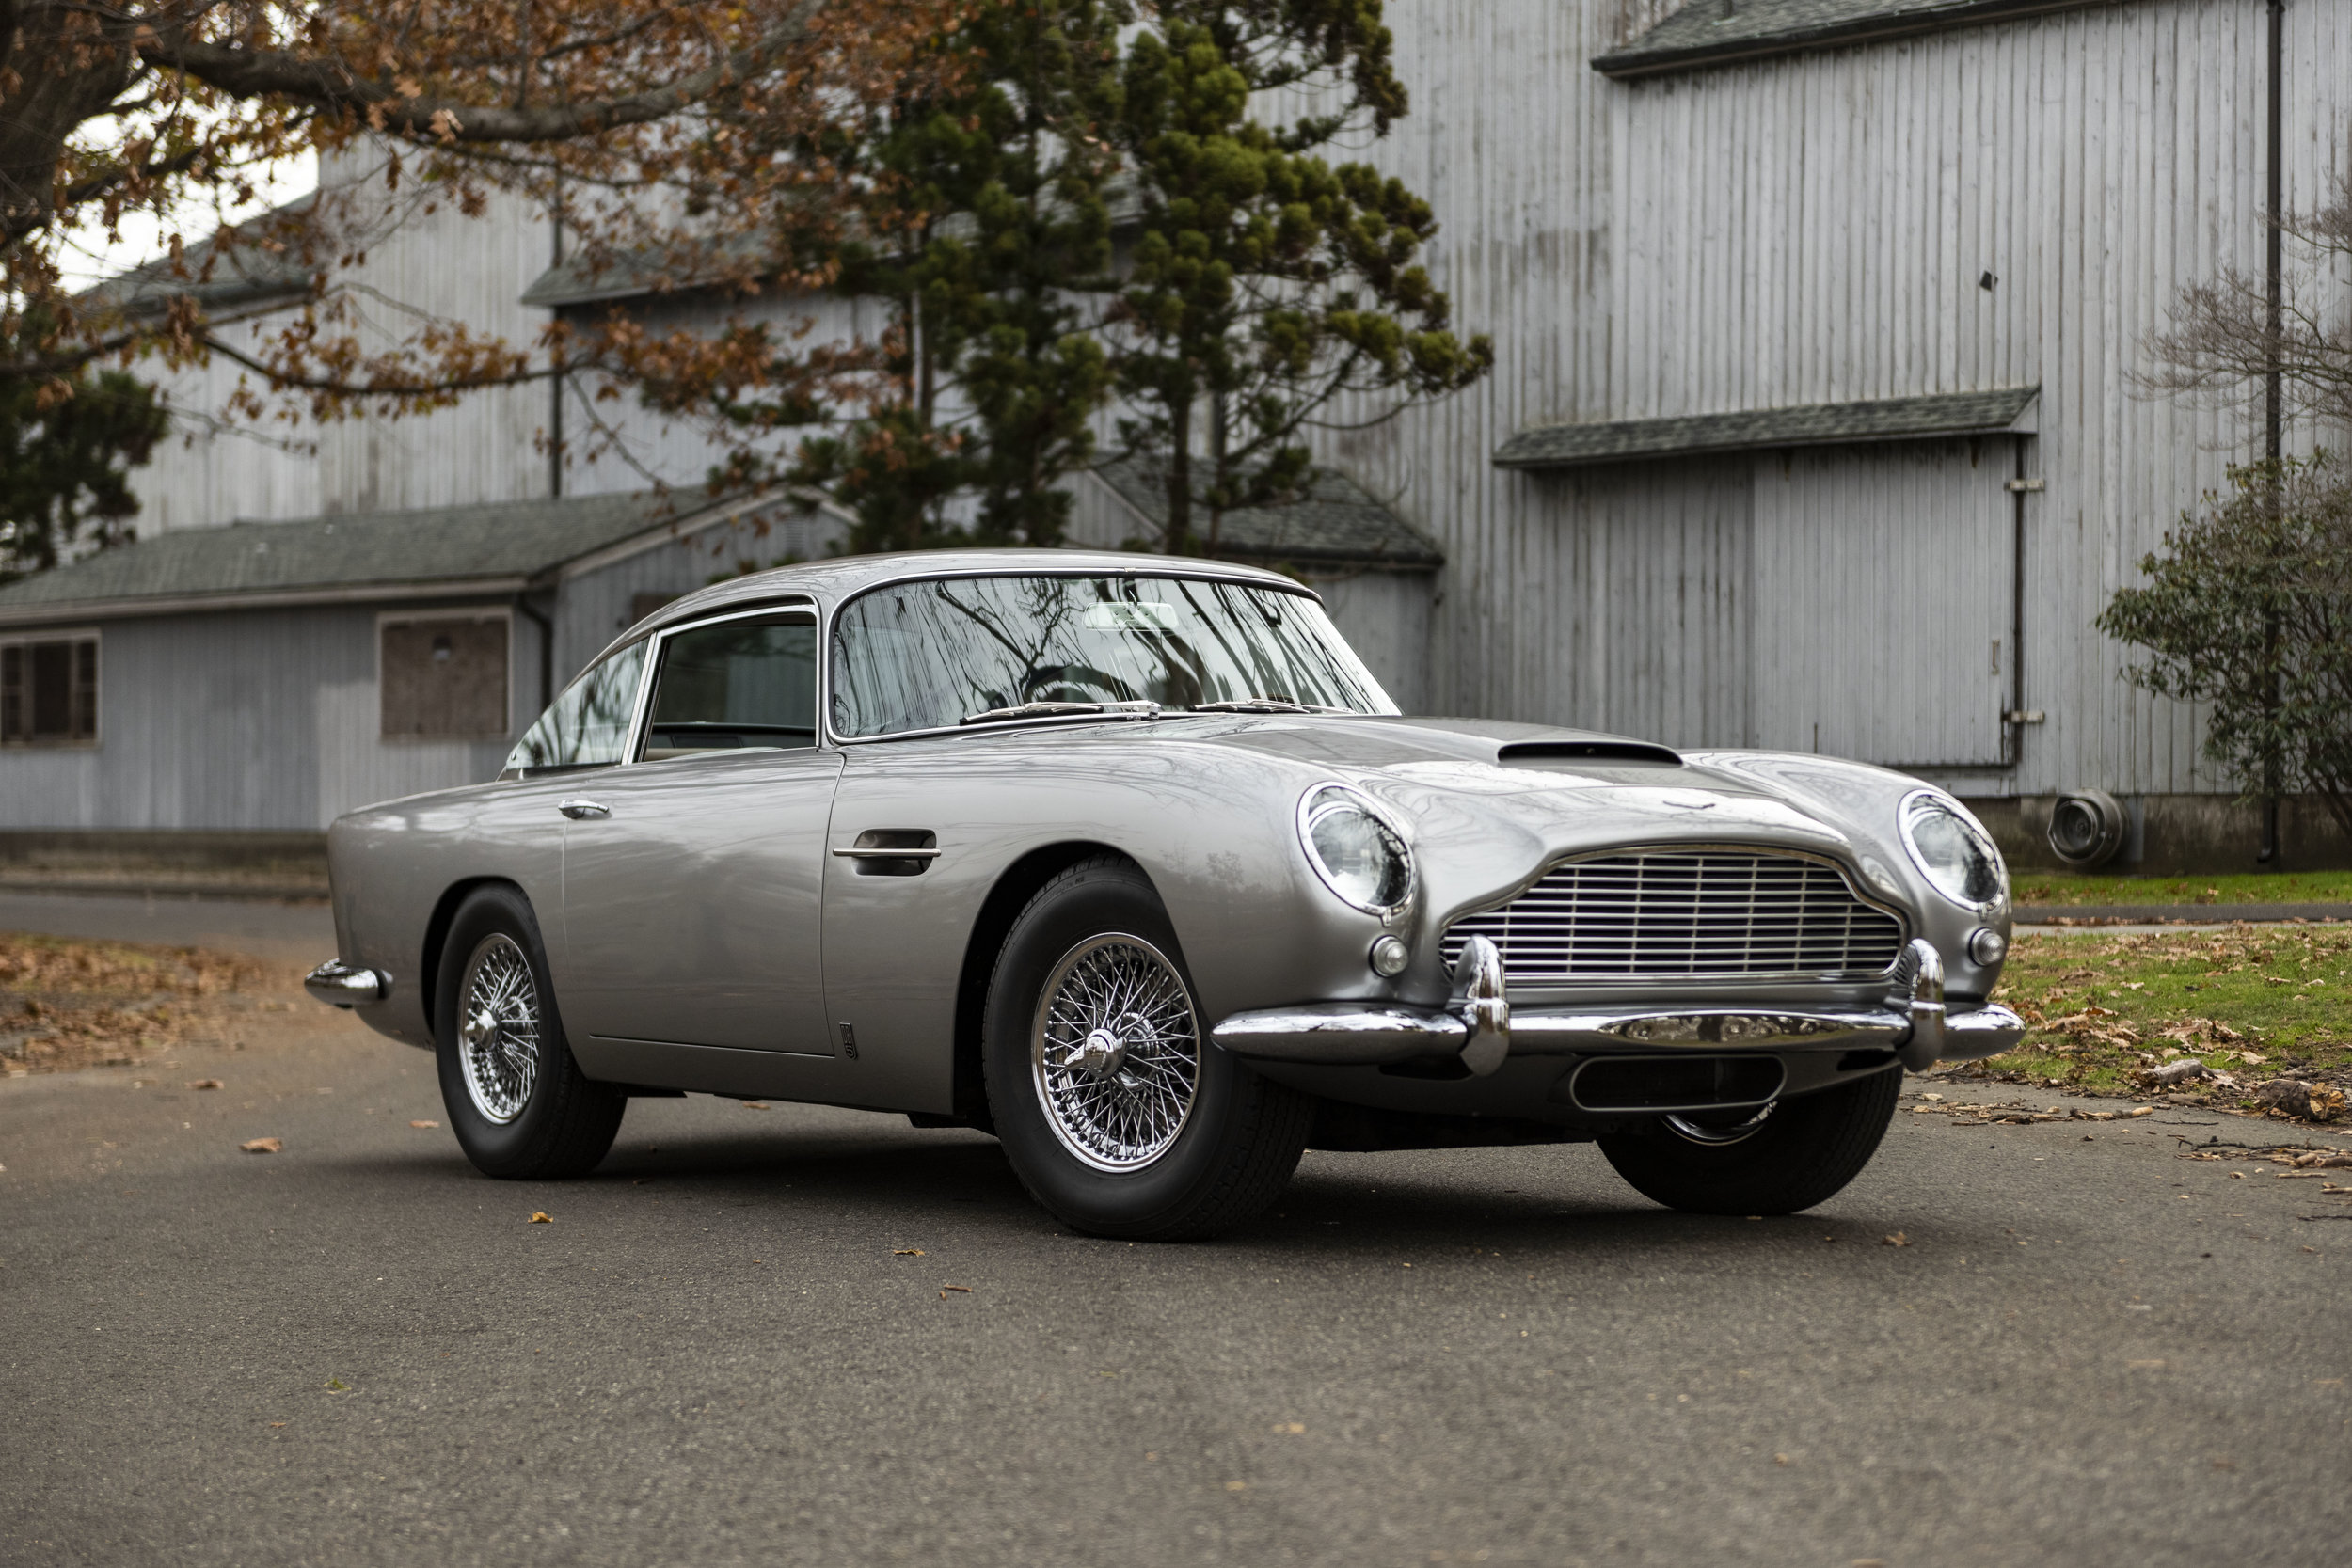 1965 Aston Martin Db5 For Sale Automotive Restorations Inc Automotive Restorations Inc